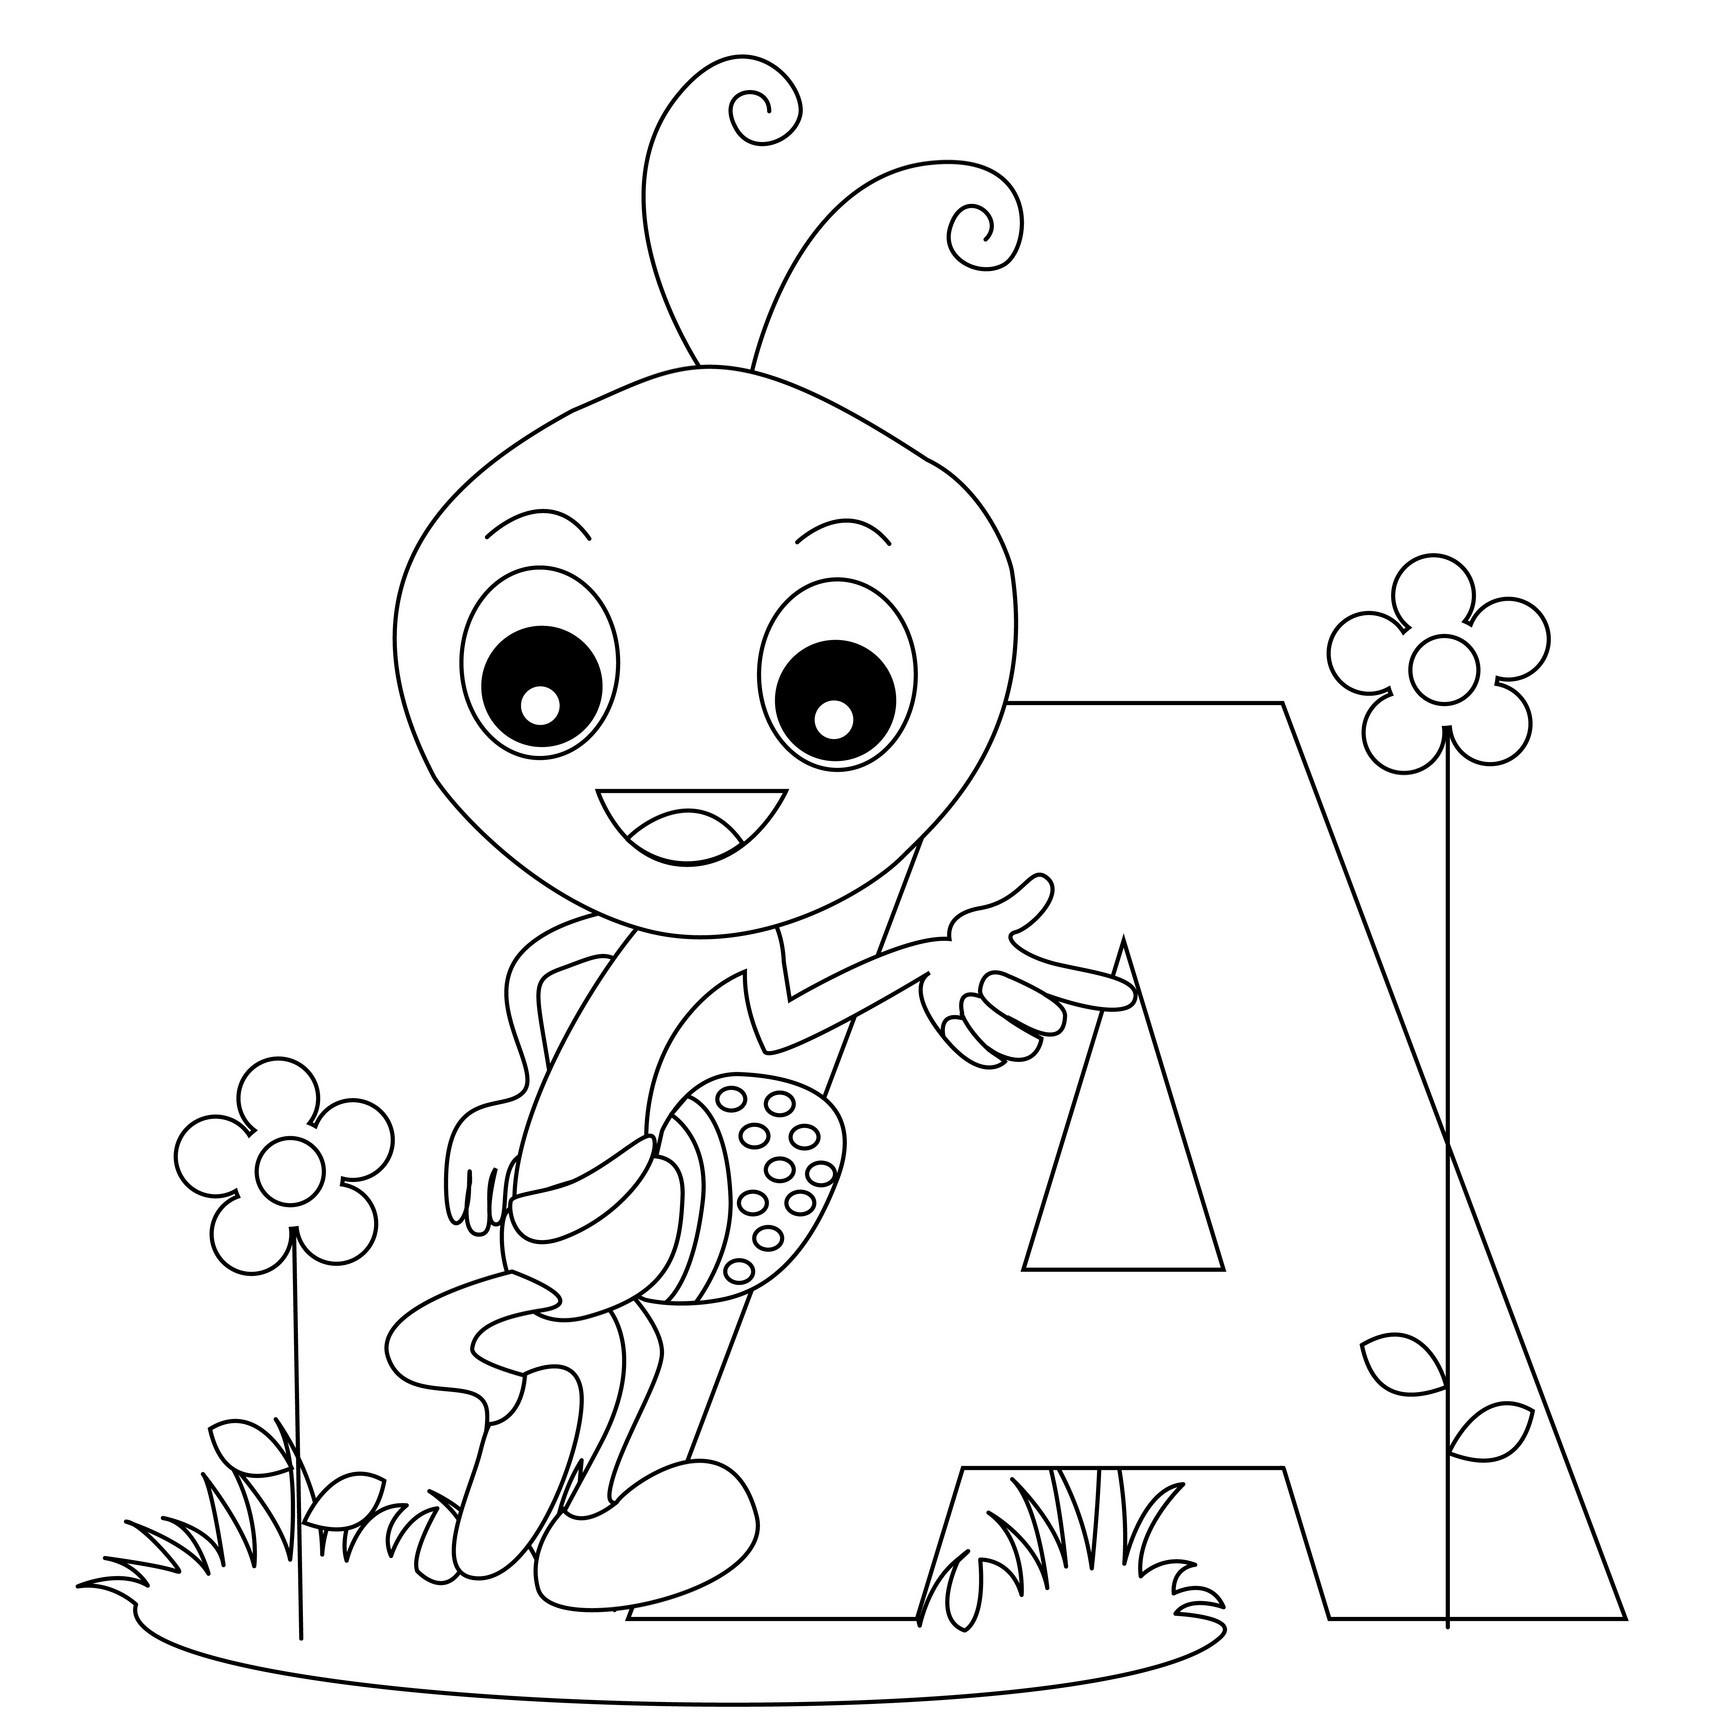 graphic alphabet coloring pages - photo#30